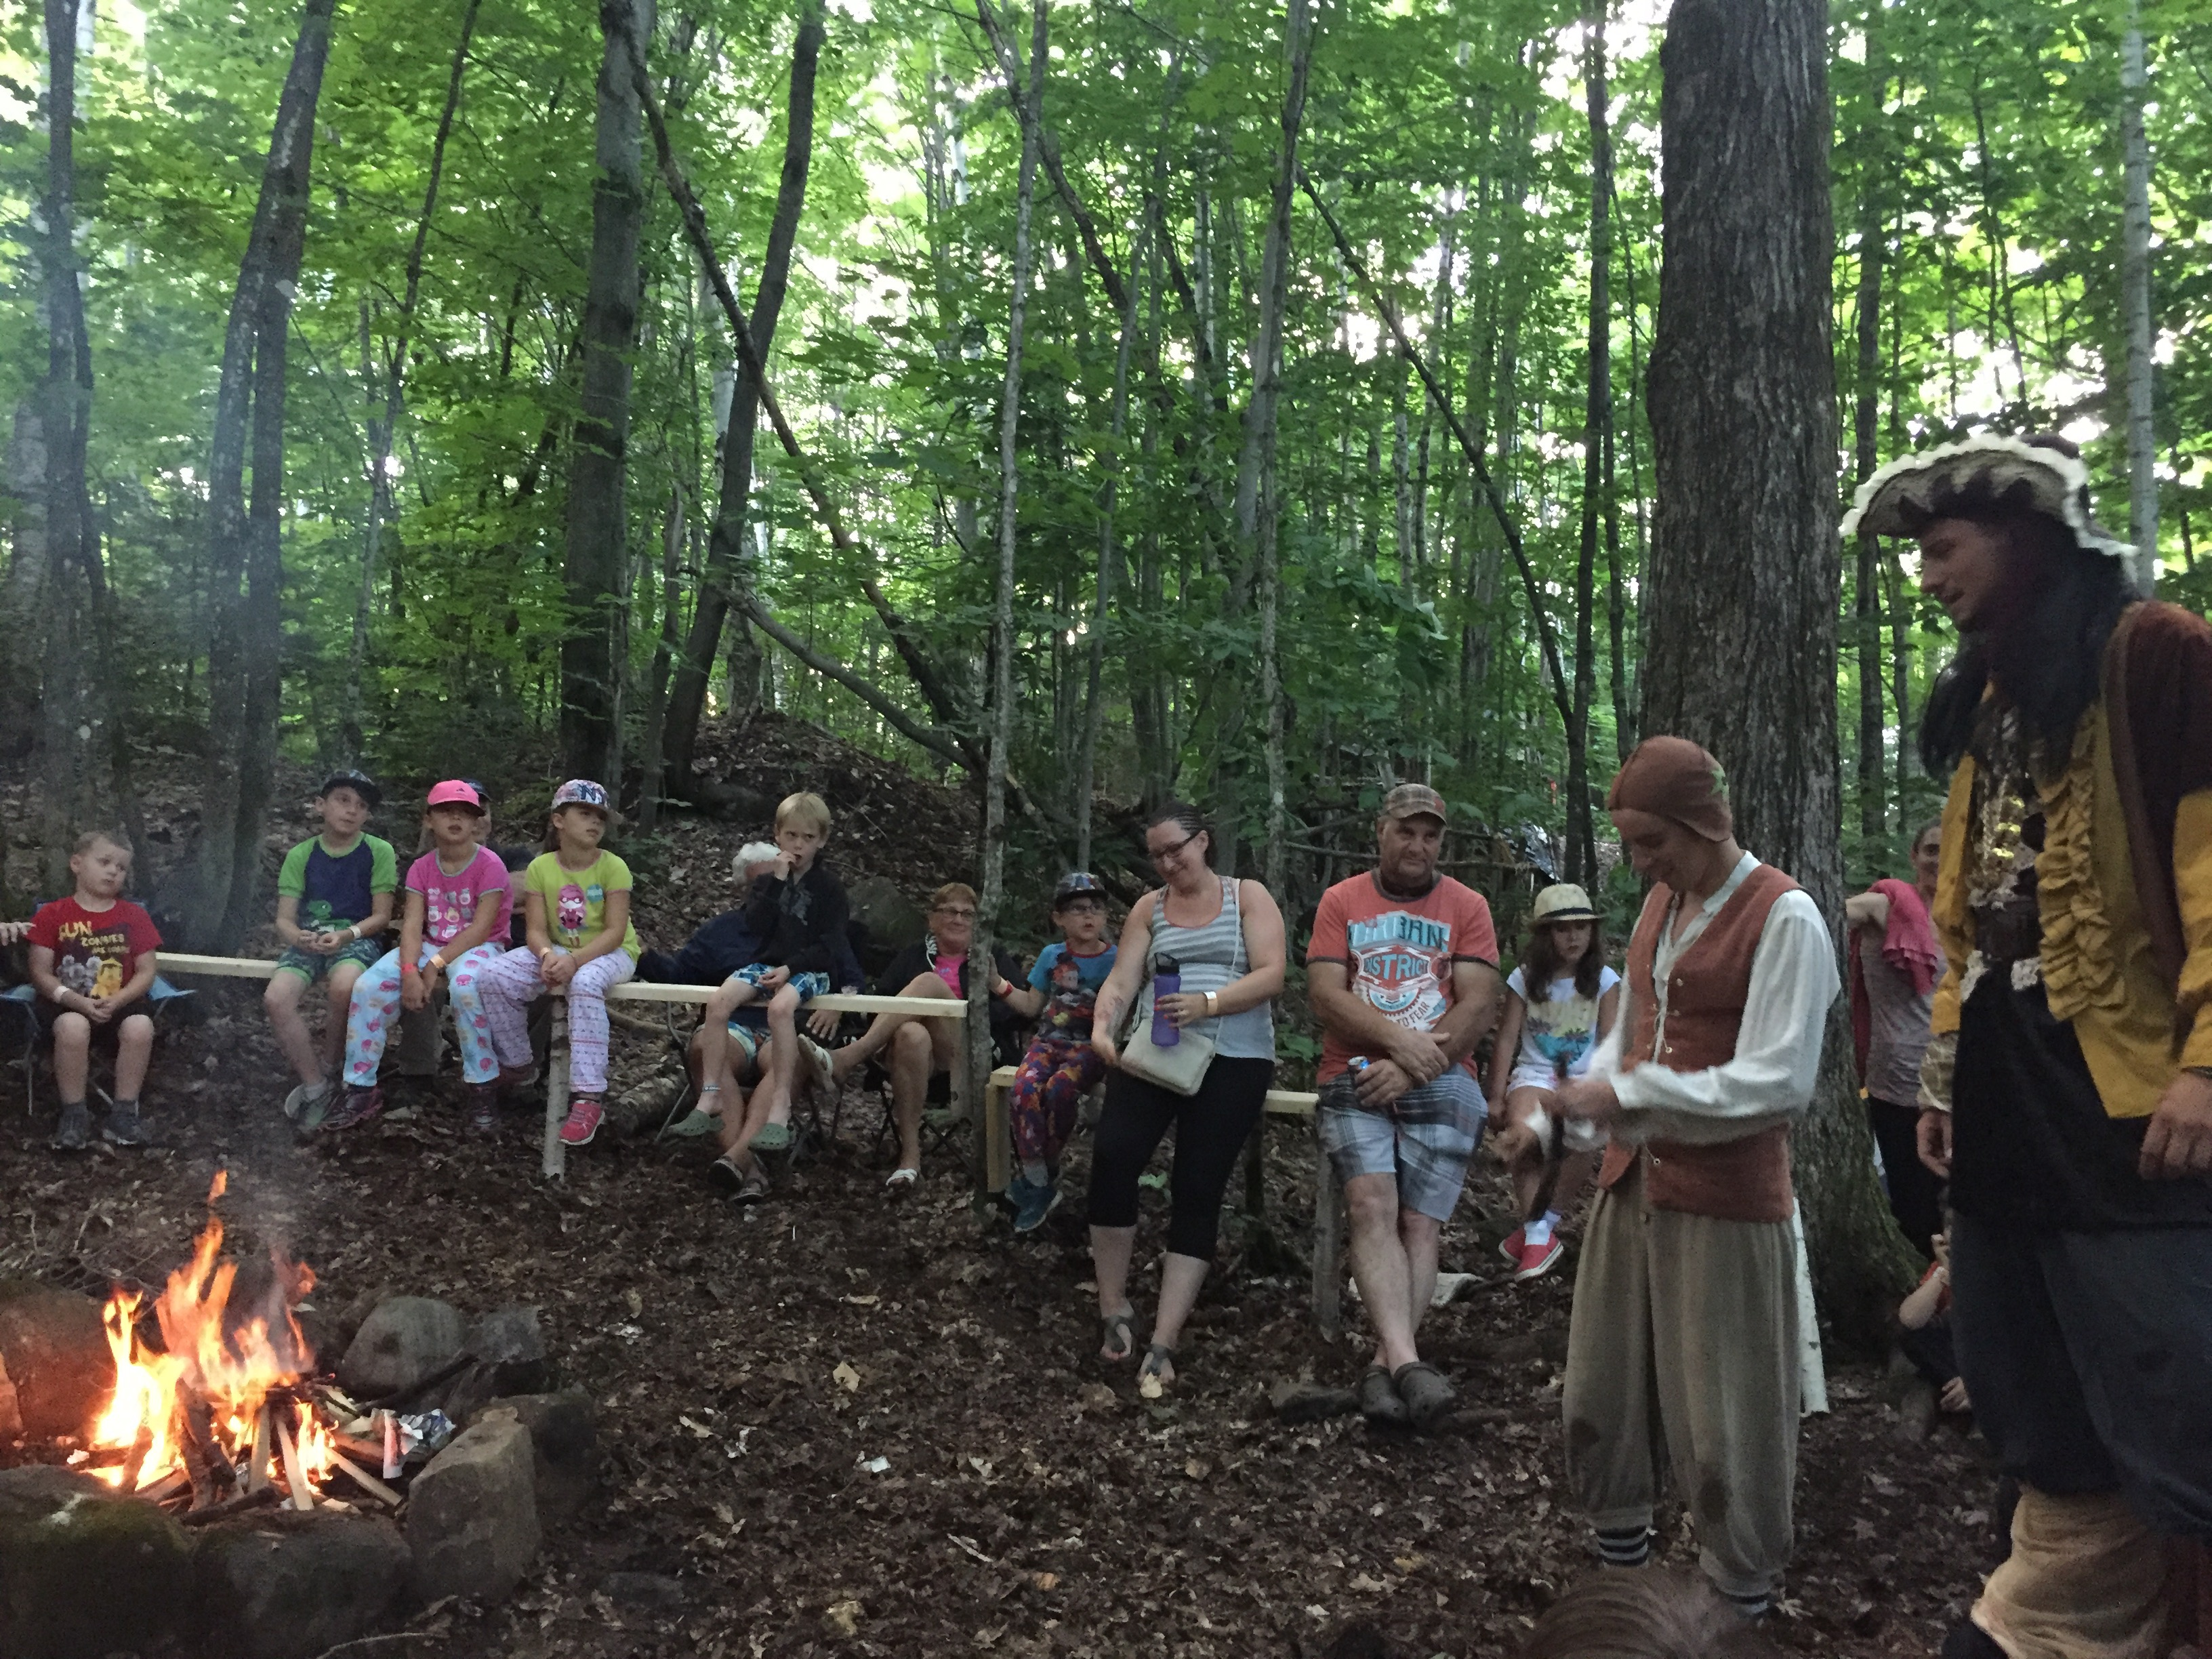 http://www.familycampgrounds.ca/wp-content/uploads/2017/01/animation-camping-familial-atlantide-12.jpg